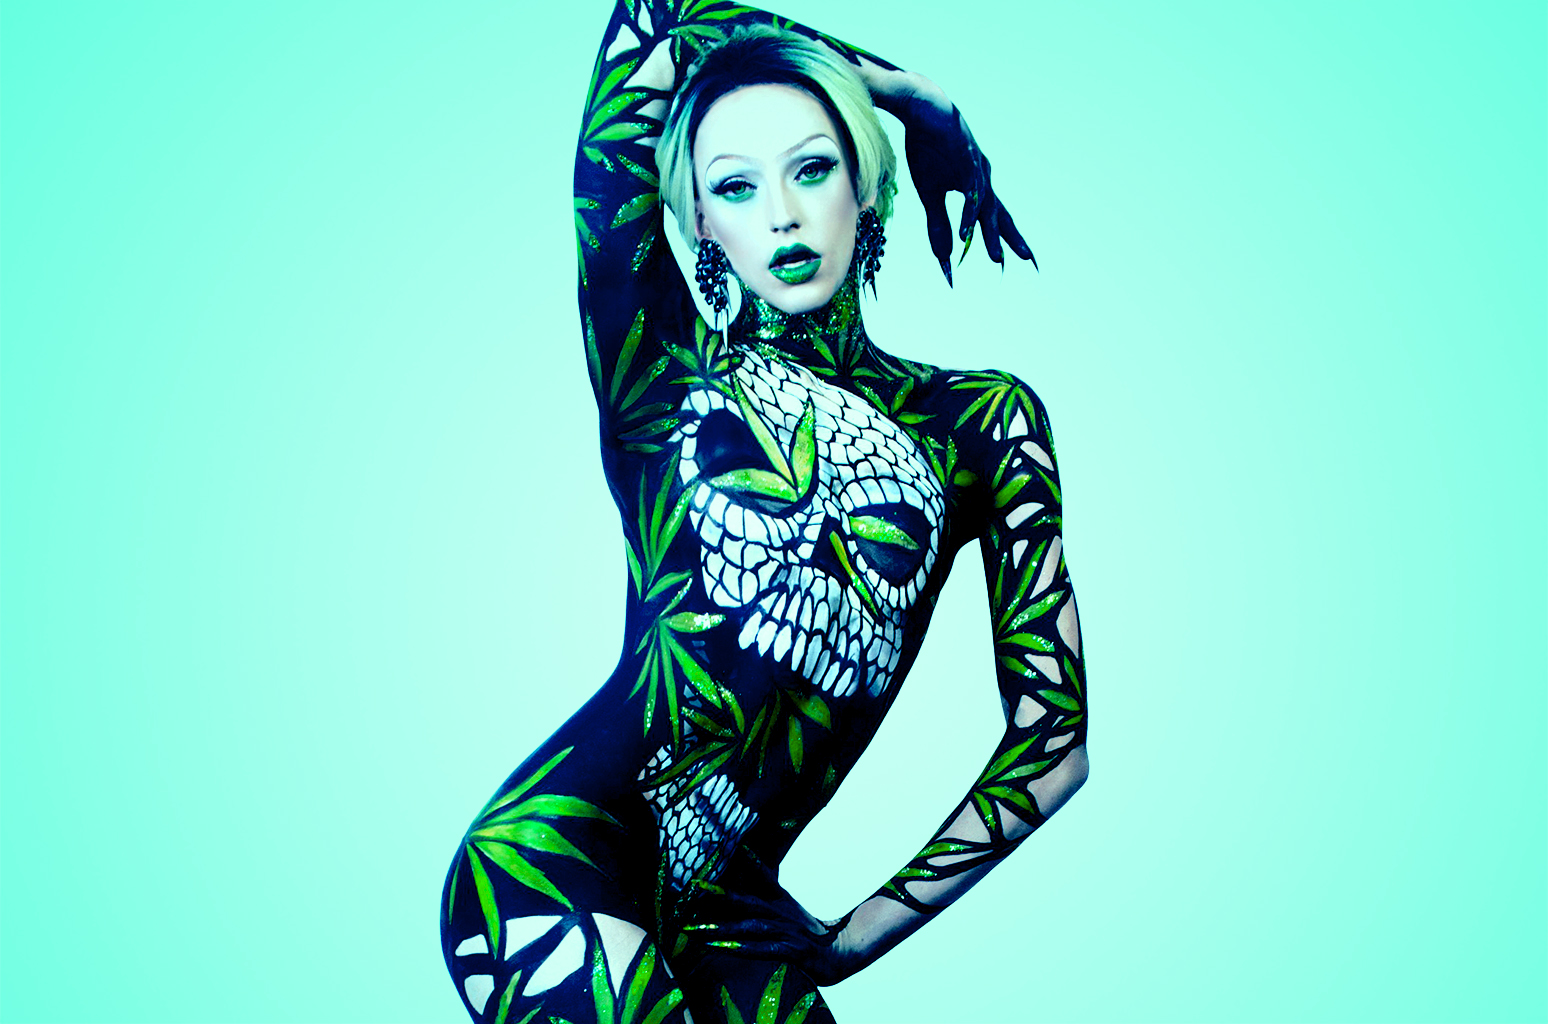 laganja-decade-of-drags-art-2018-billboard-1548.jpg